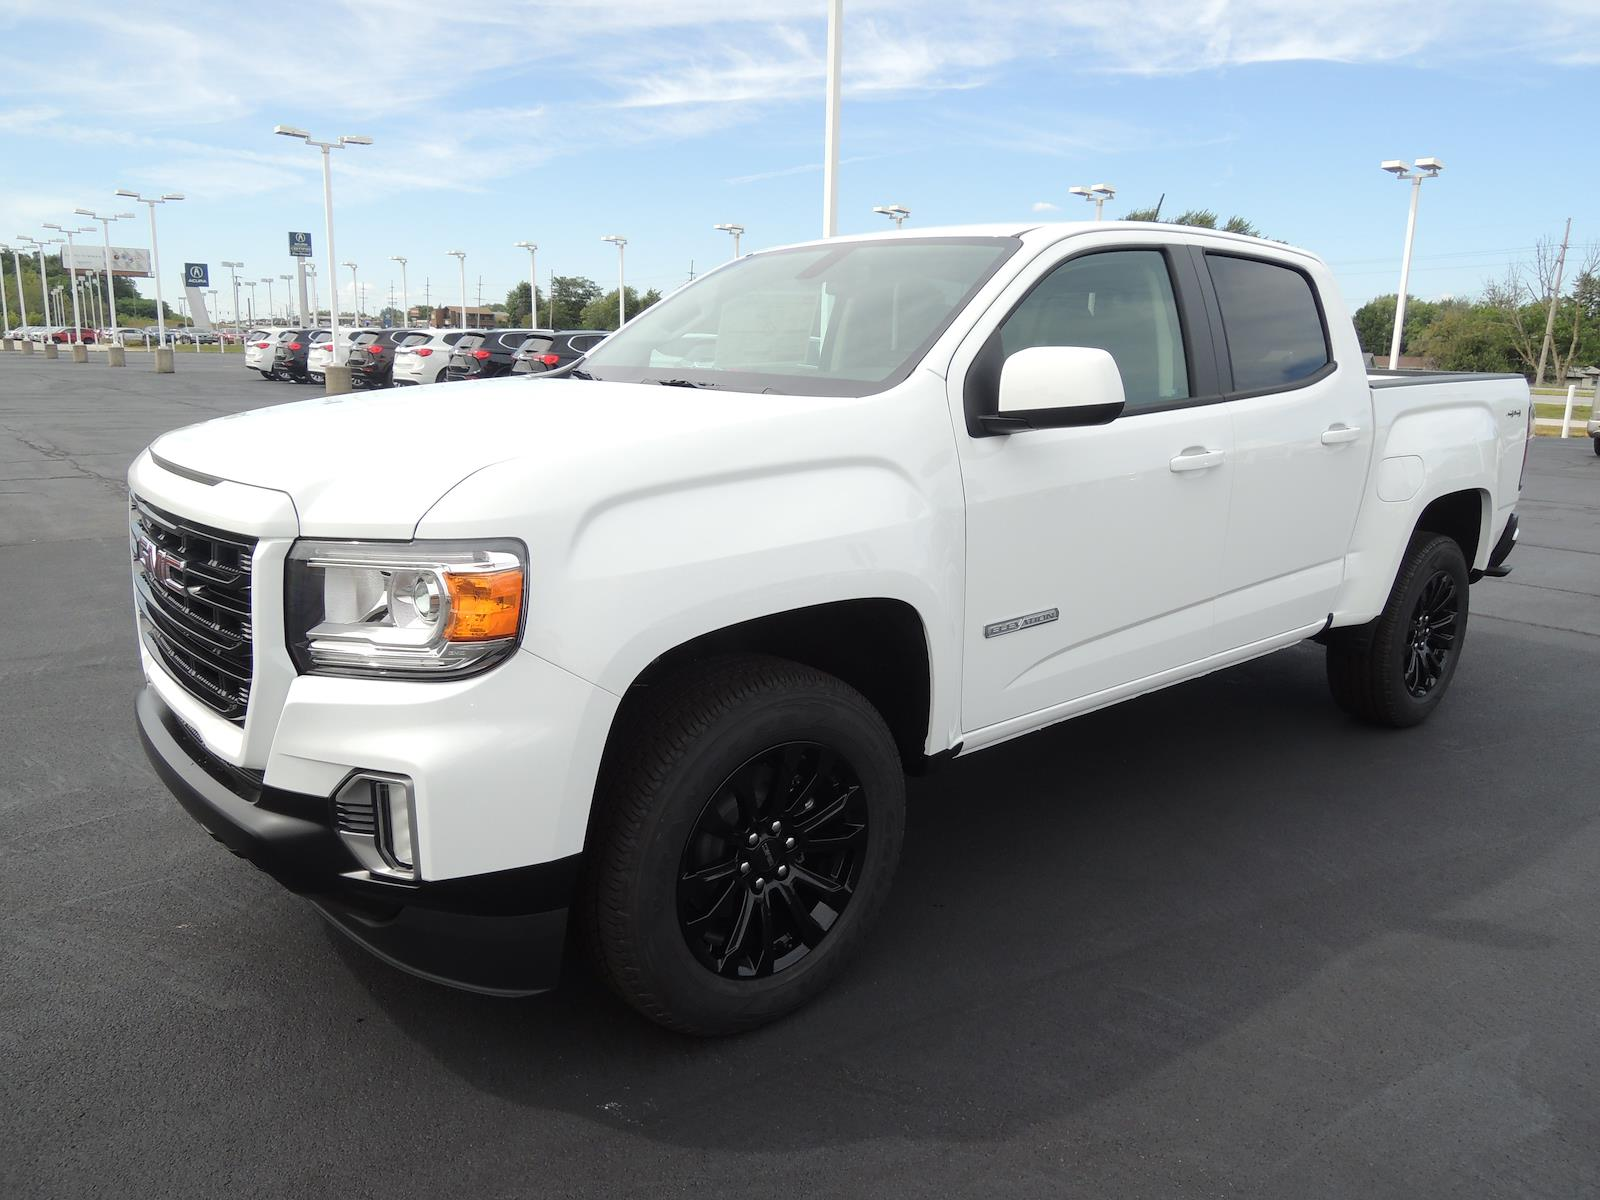 2021 GMC Canyon Crew Cab 4x4, Pickup #MT194 - photo 3